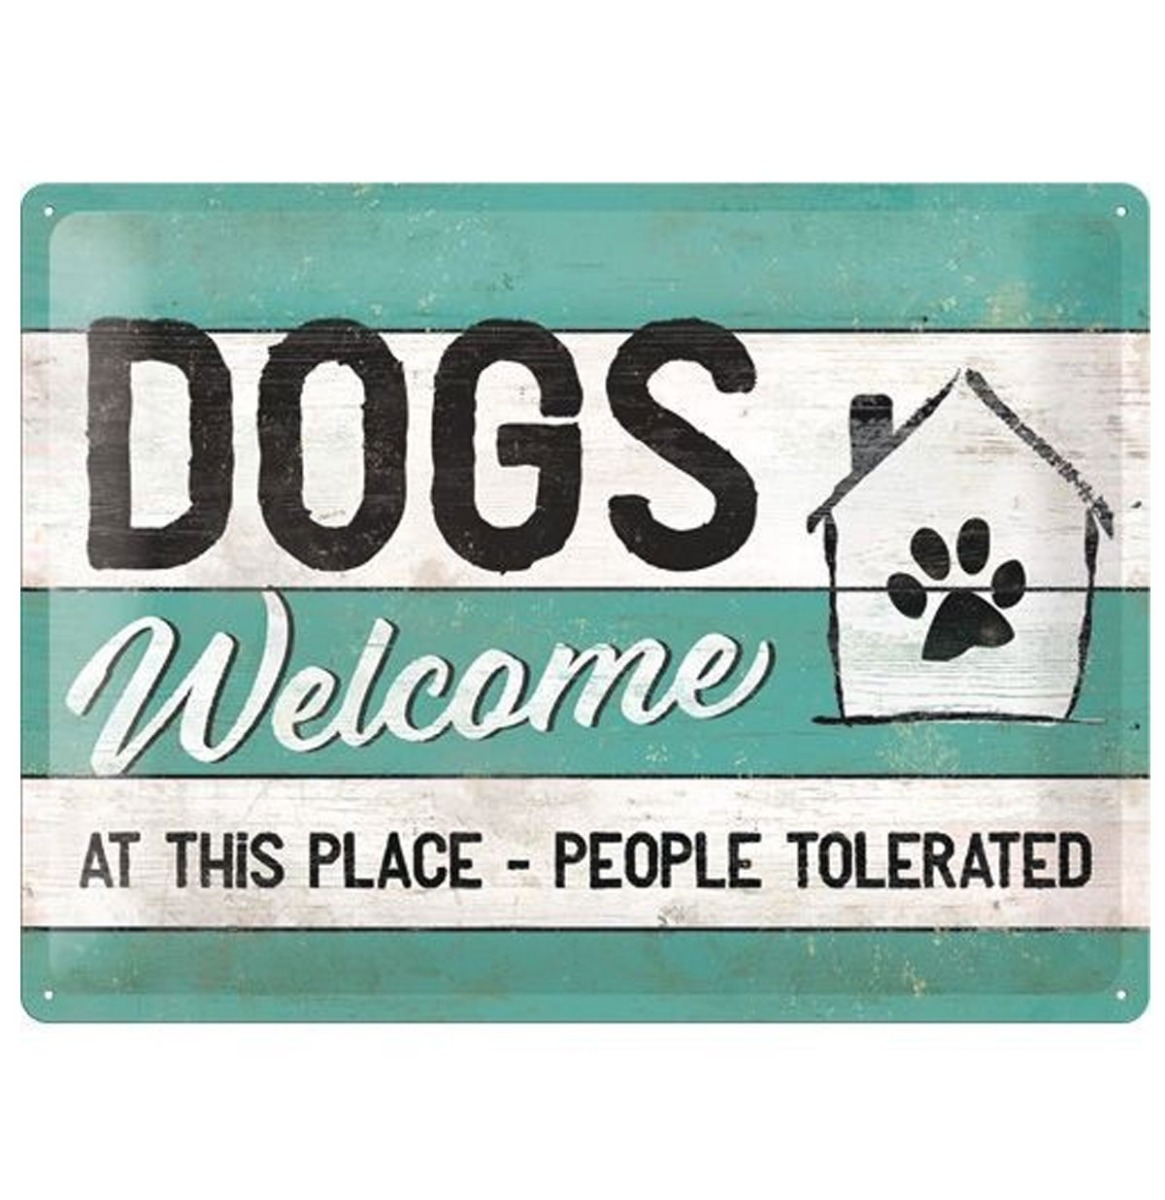 Dogs Welcome At This Place-People Tolerated Relief Metalen Bord 30 x 40 cm